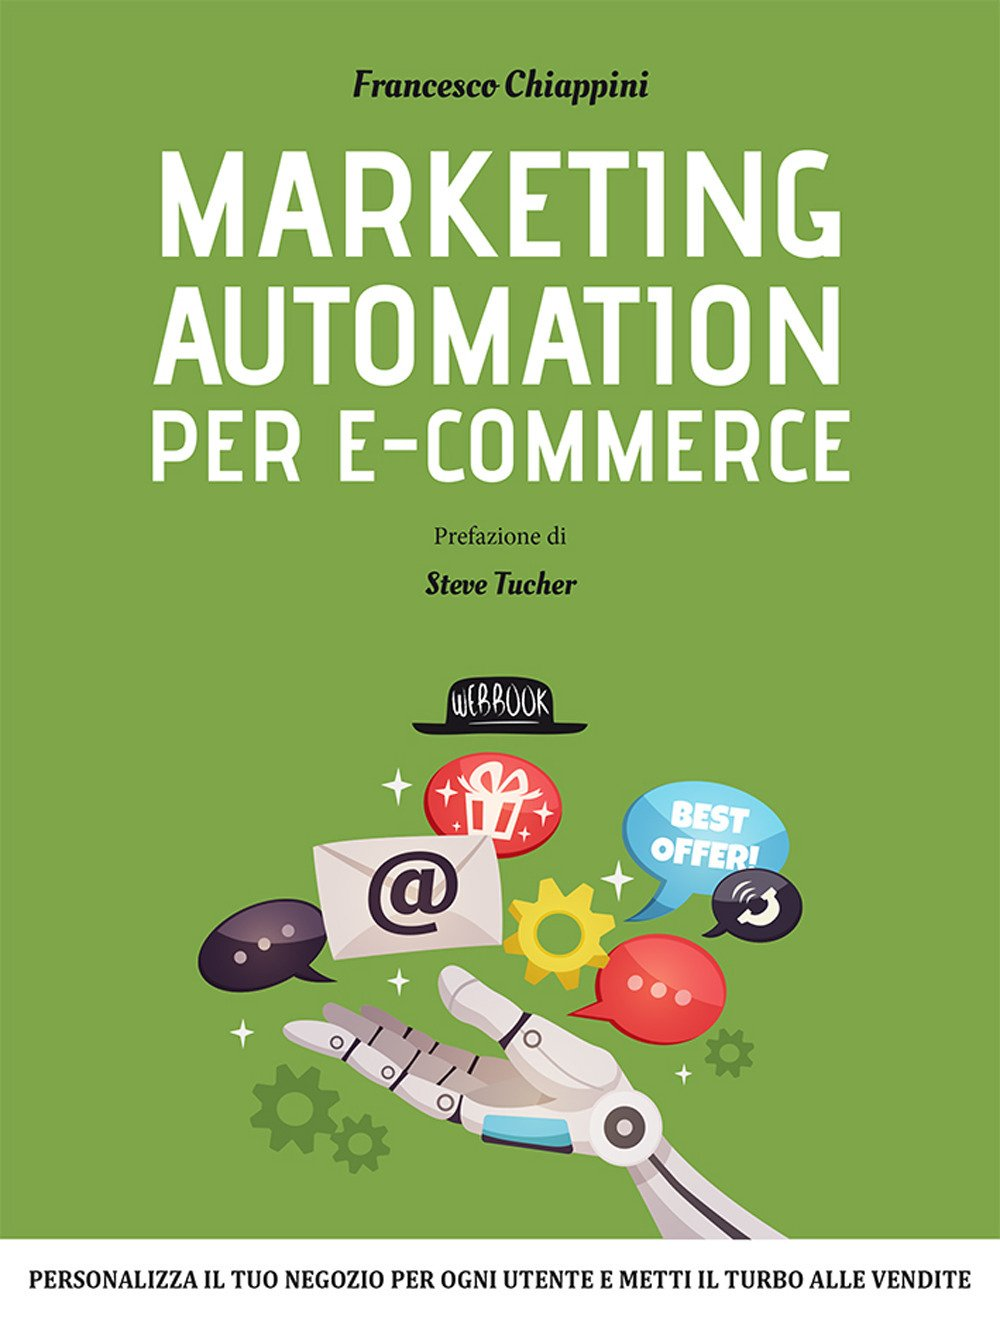 Amazon.it: Marketing automation per e-commerce - Francesco Chiappini ...